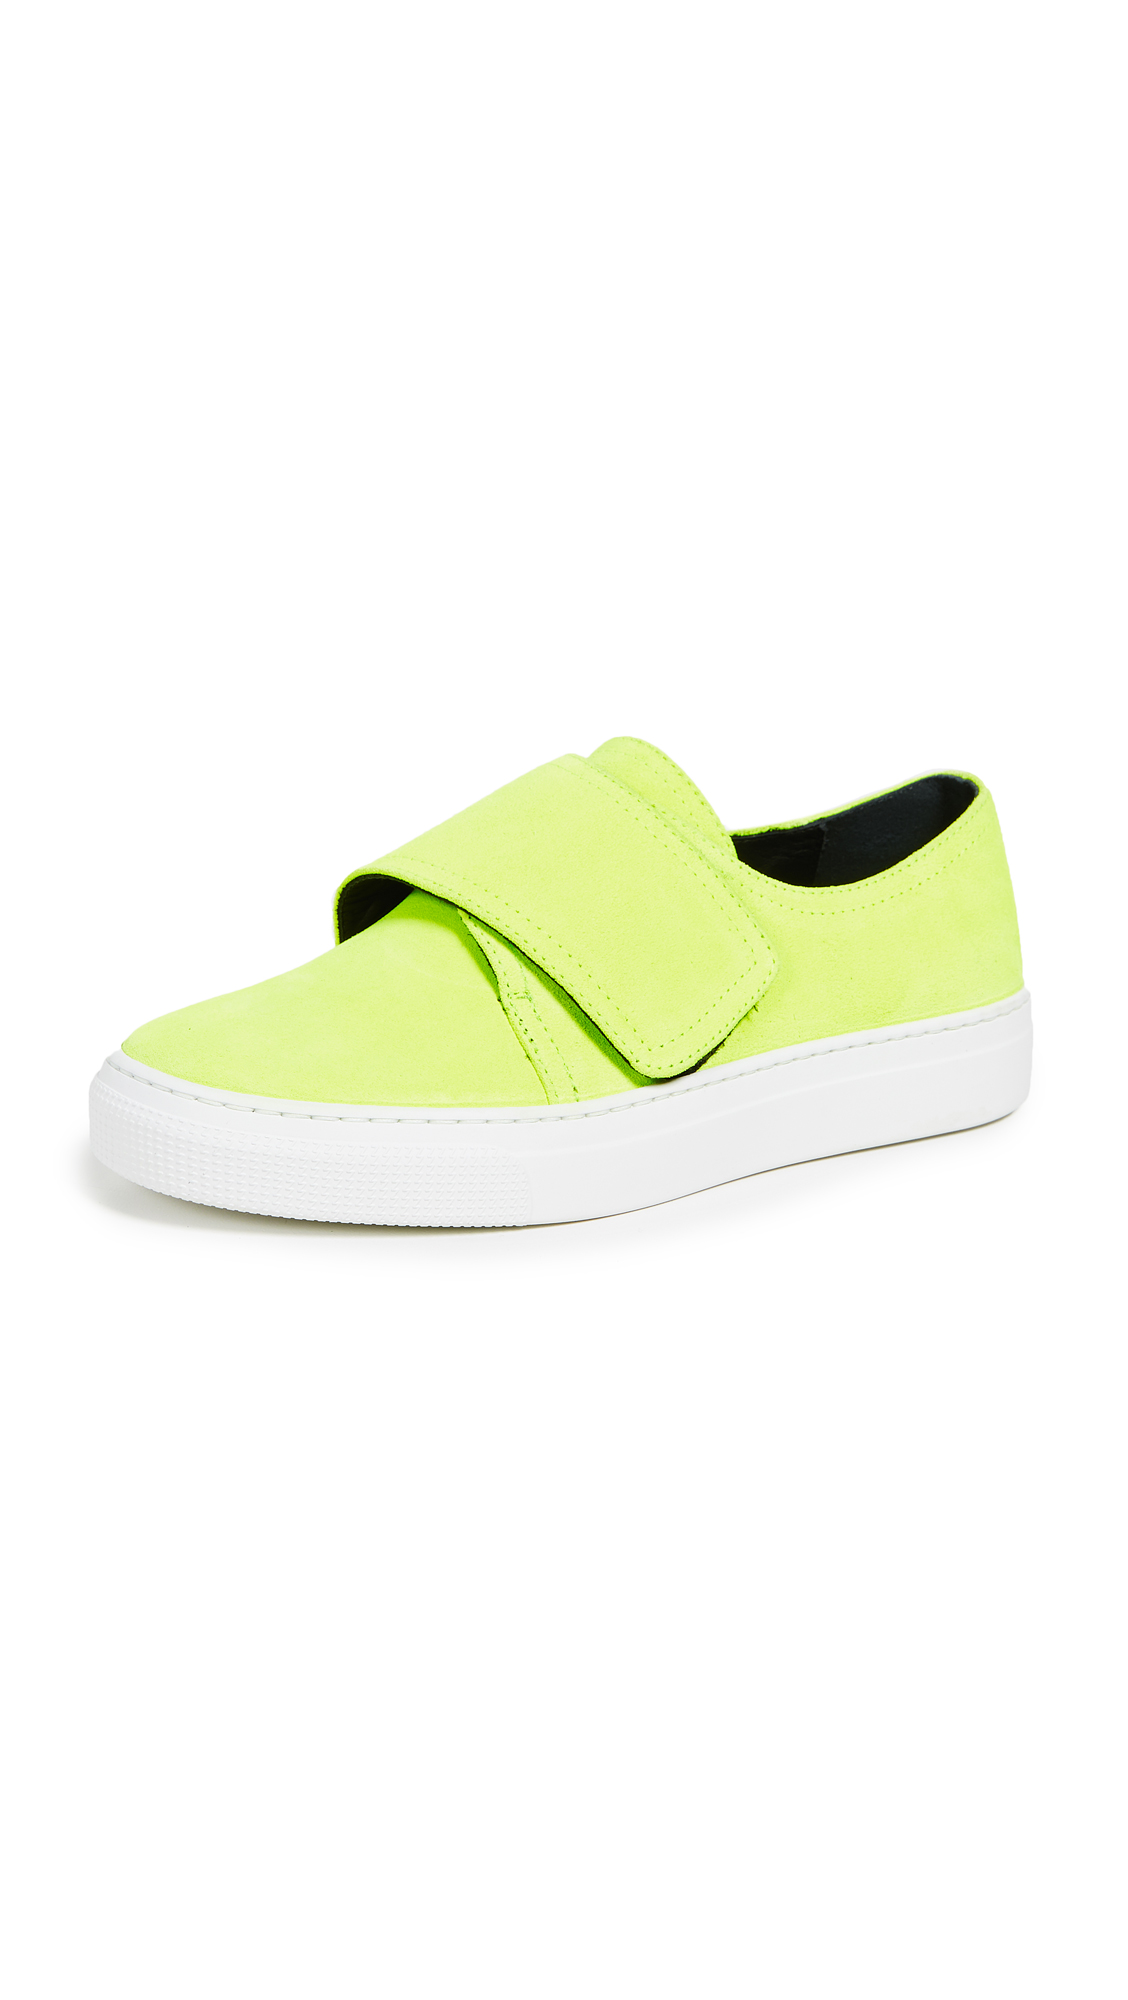 ZCD MONTREAL Senna Sneakers in Giallo Neon